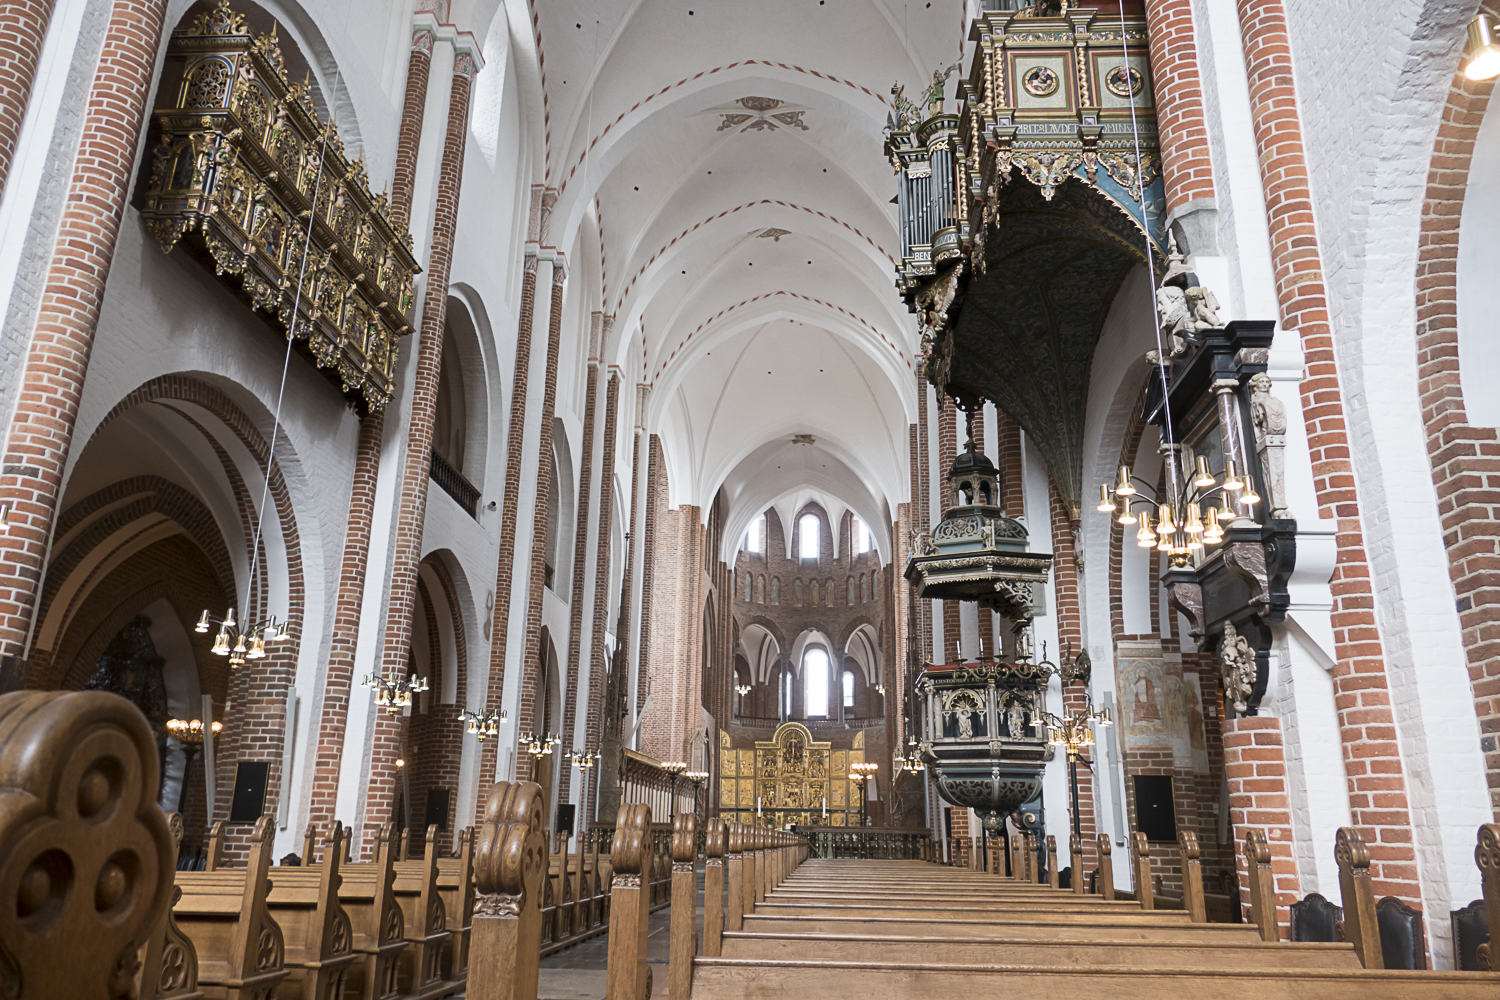 The interior of the Roskilde Cathedral